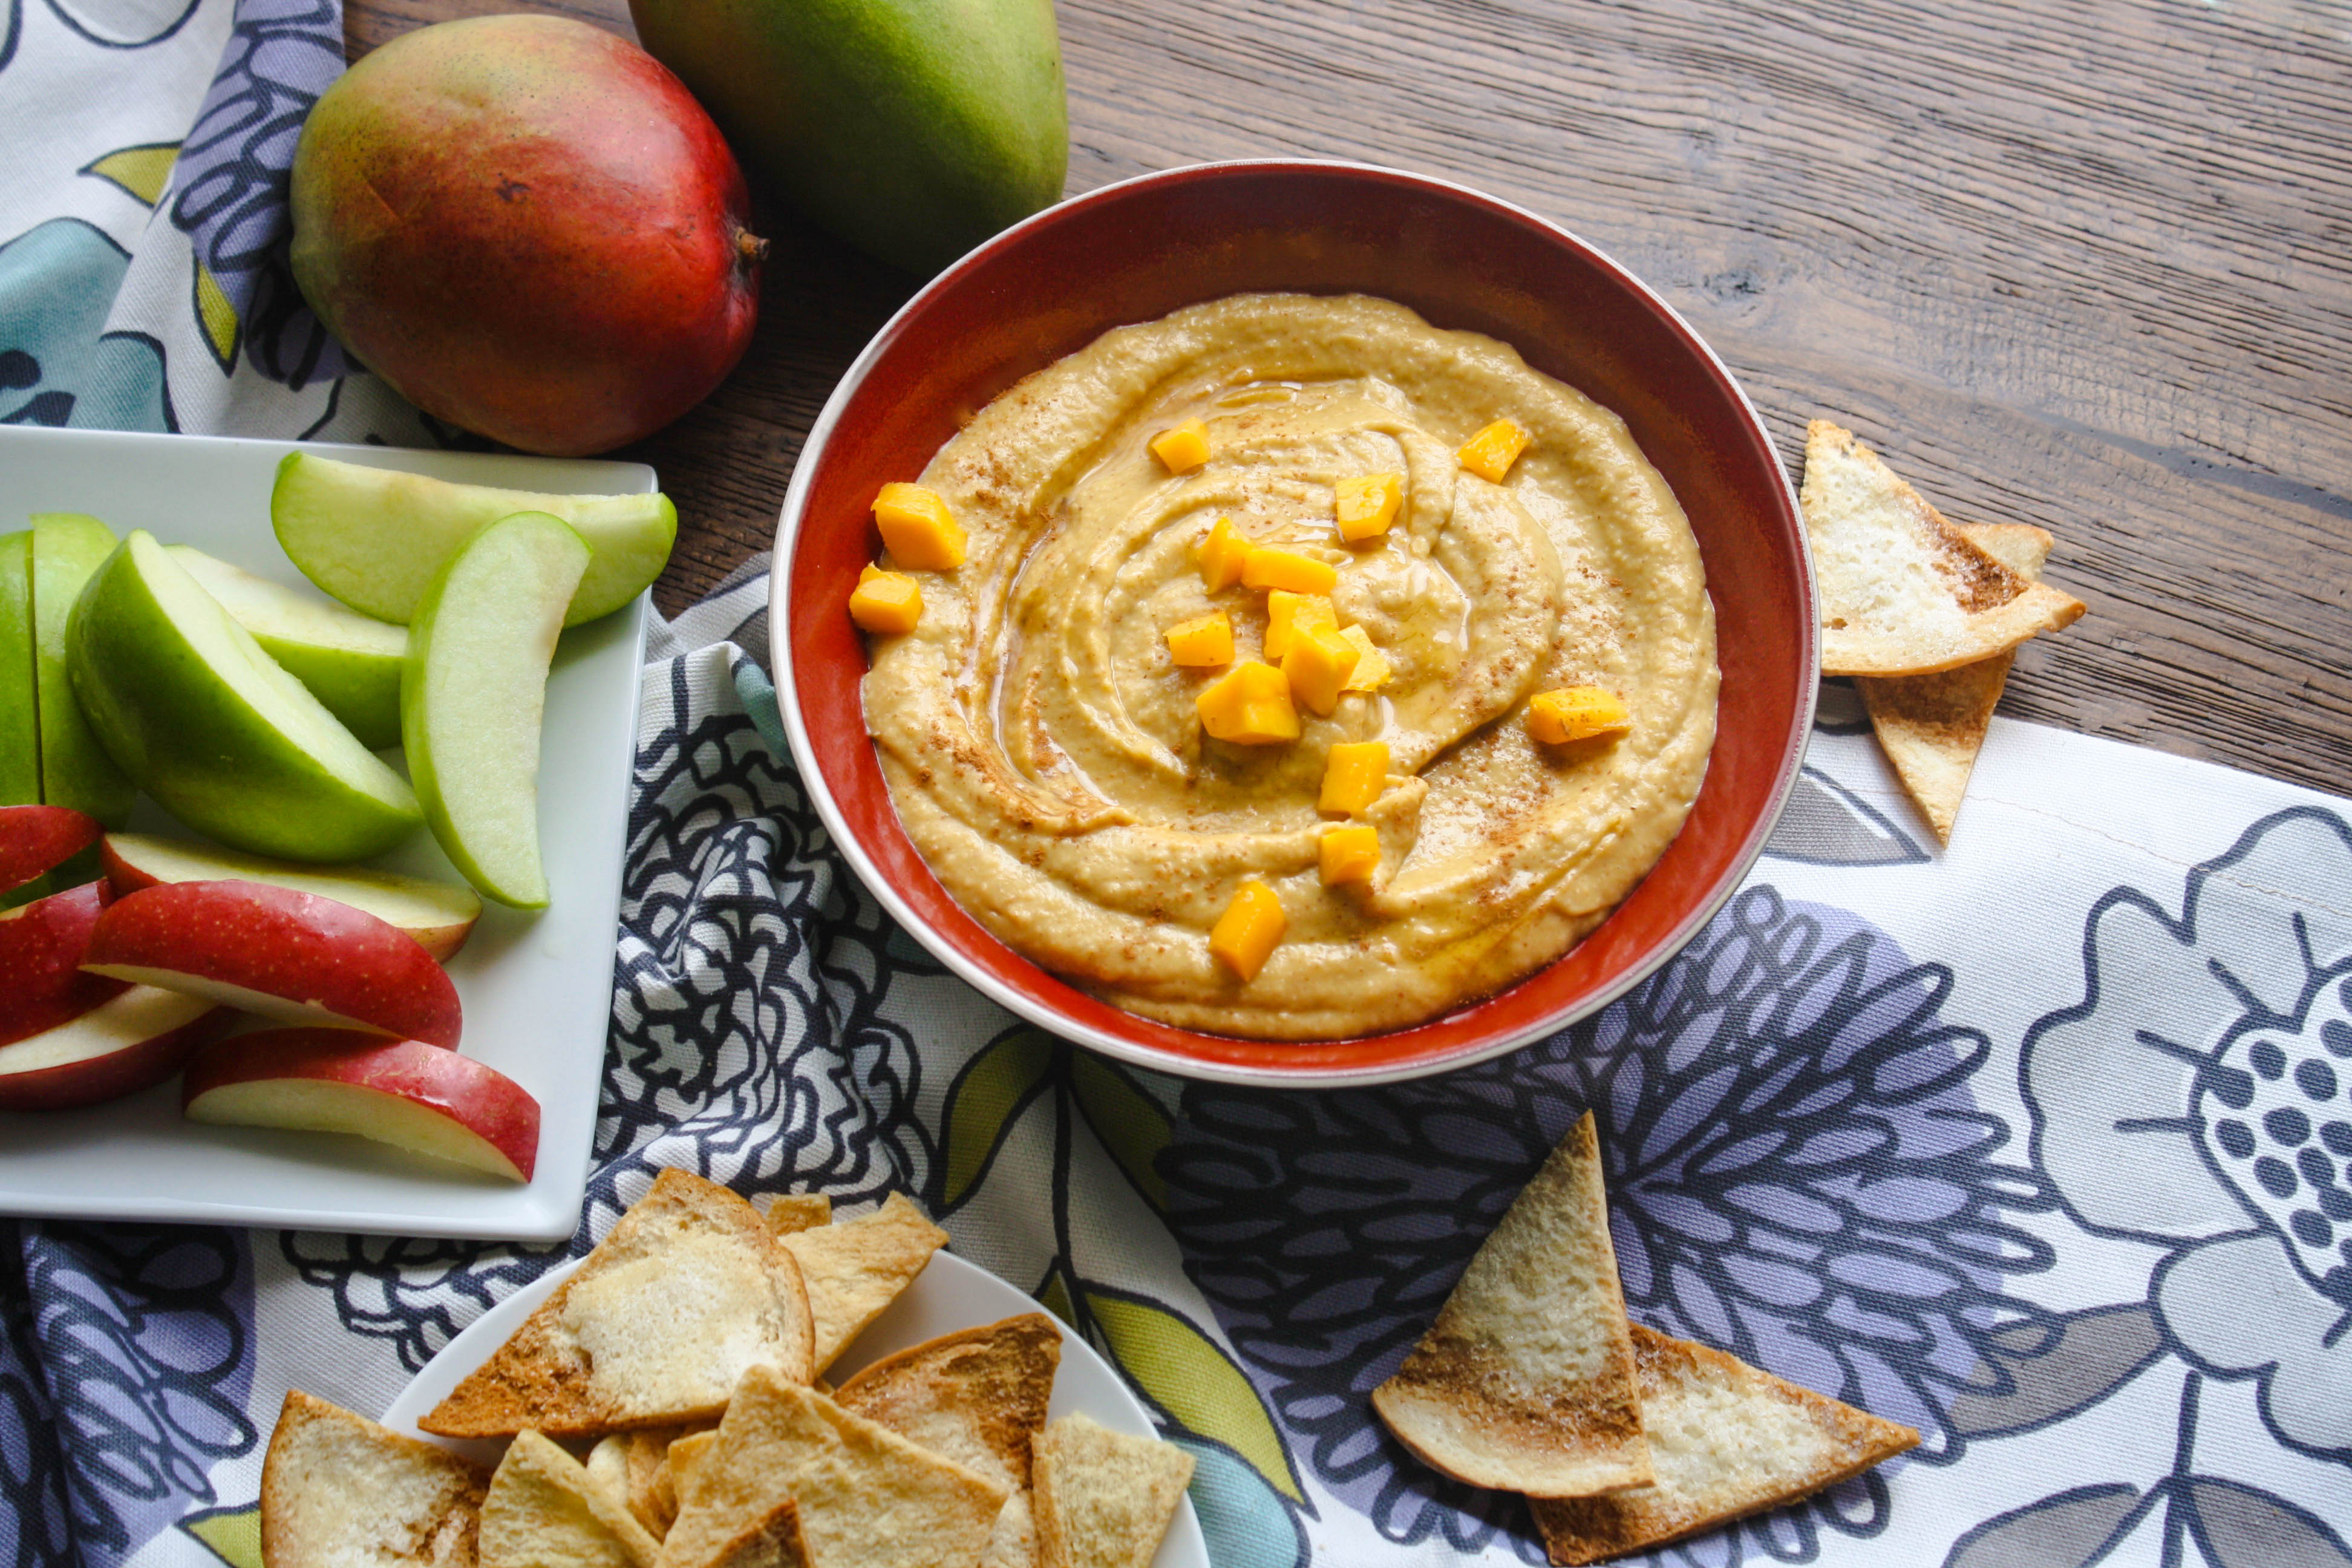 Honey-Mango Dessert Hummus is a fun option for dessert. It's sweet, but not too sweet, so it makes a great afternoon snack, too!